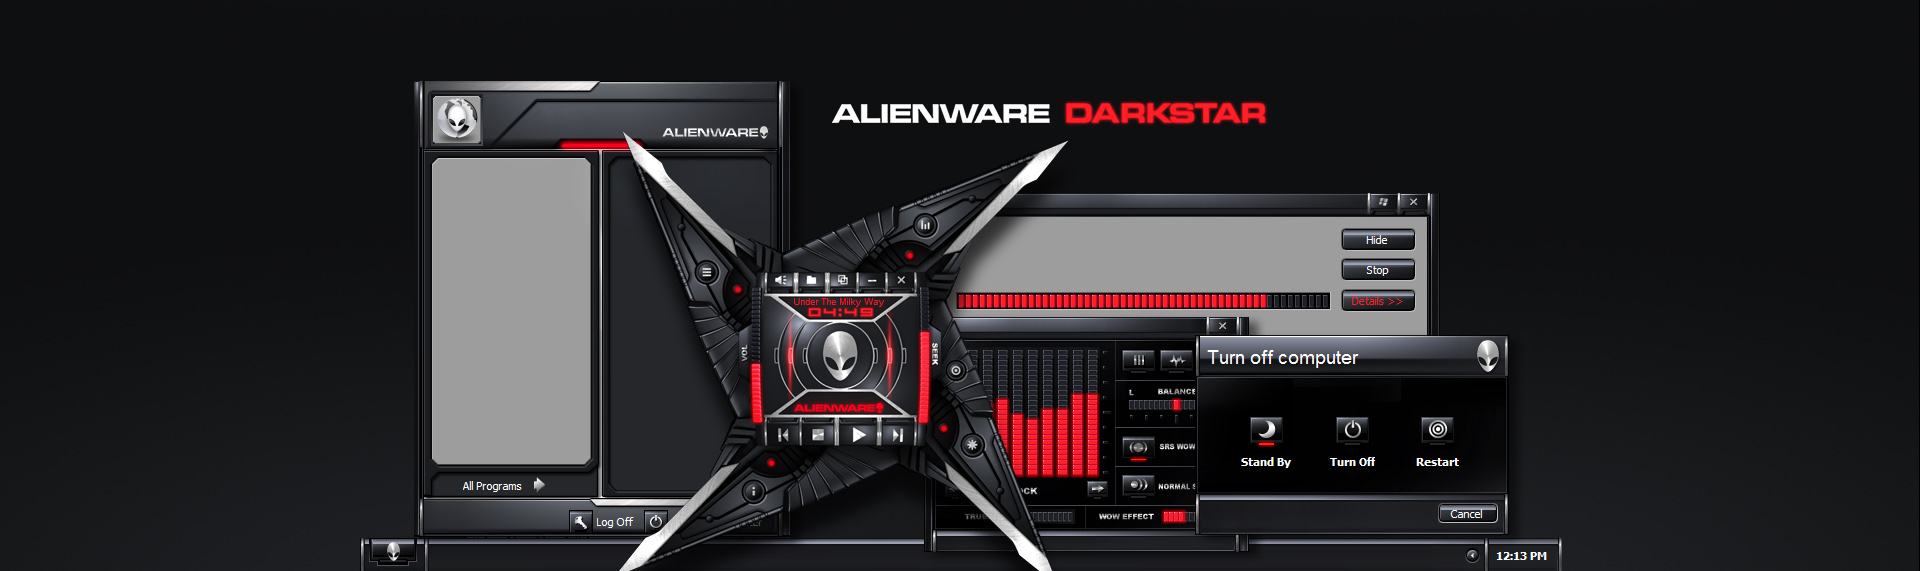 Alienware Darkstar  Client: Alienware Corporation  Alienware Darkstar features breathtaking design elements such as audio-enhanced startup and runtime animations, function-responsive LED arrays and highly tactile control surfaces. All of these features combine to create a stunning desktop design brilliantly captured in black and red and infused with traces of Alienwares distinctive style. This was The Skins Factory's first Alienware Windows desktop theme. We'd gone to design 6 more. Copyright. Alienware Corporation. All Rights Reserved.